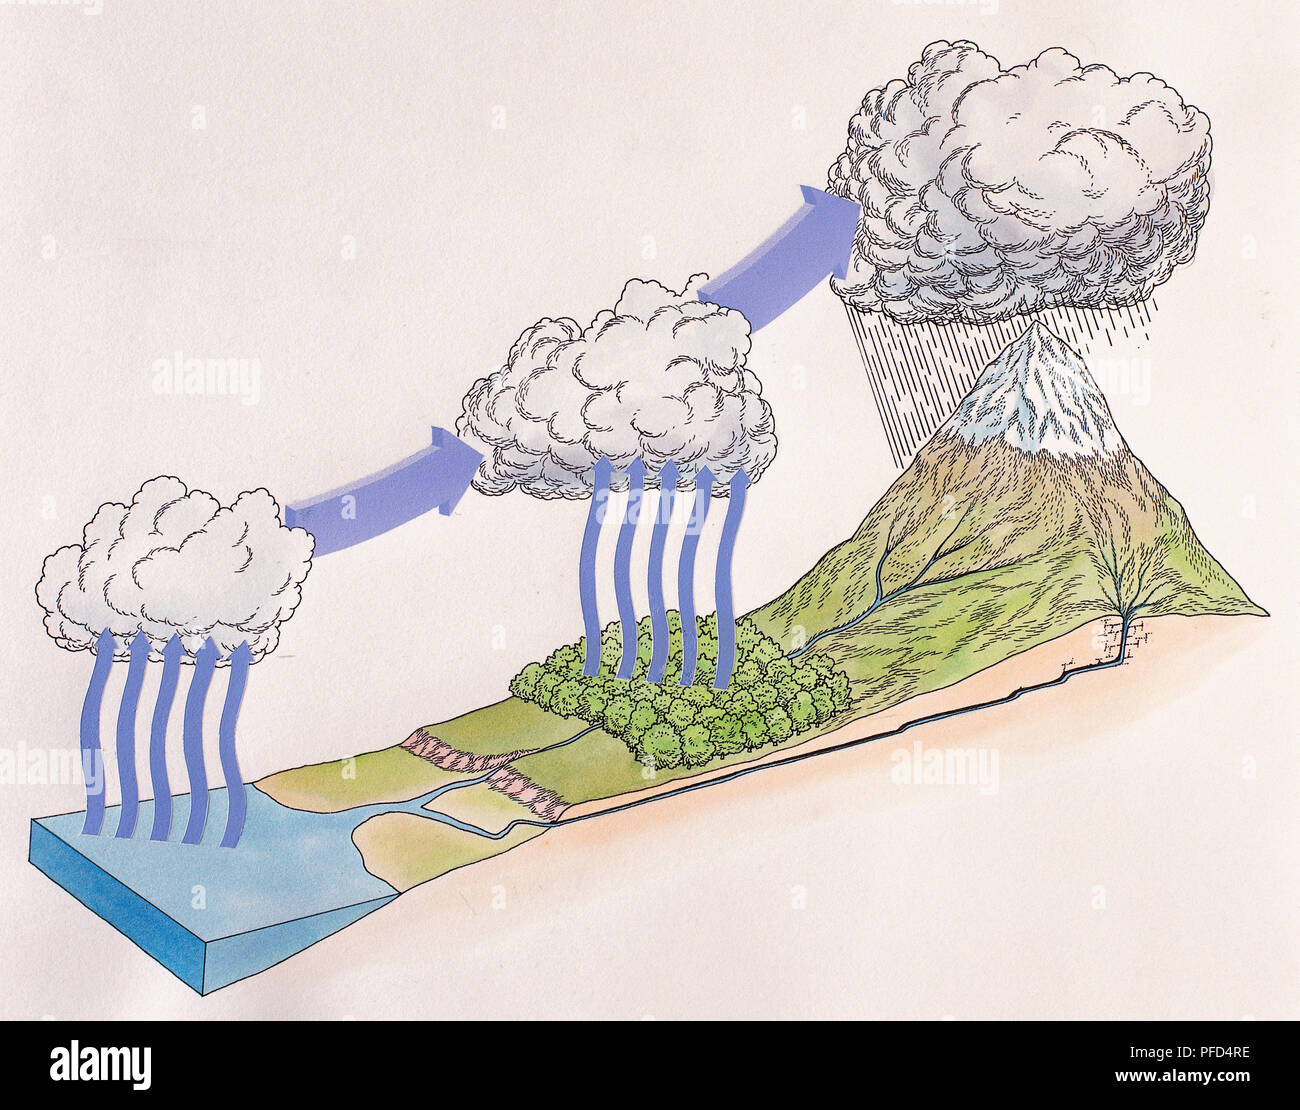 Diagram showing water cycle of rain and snow evaporating sea water forming cloud trees